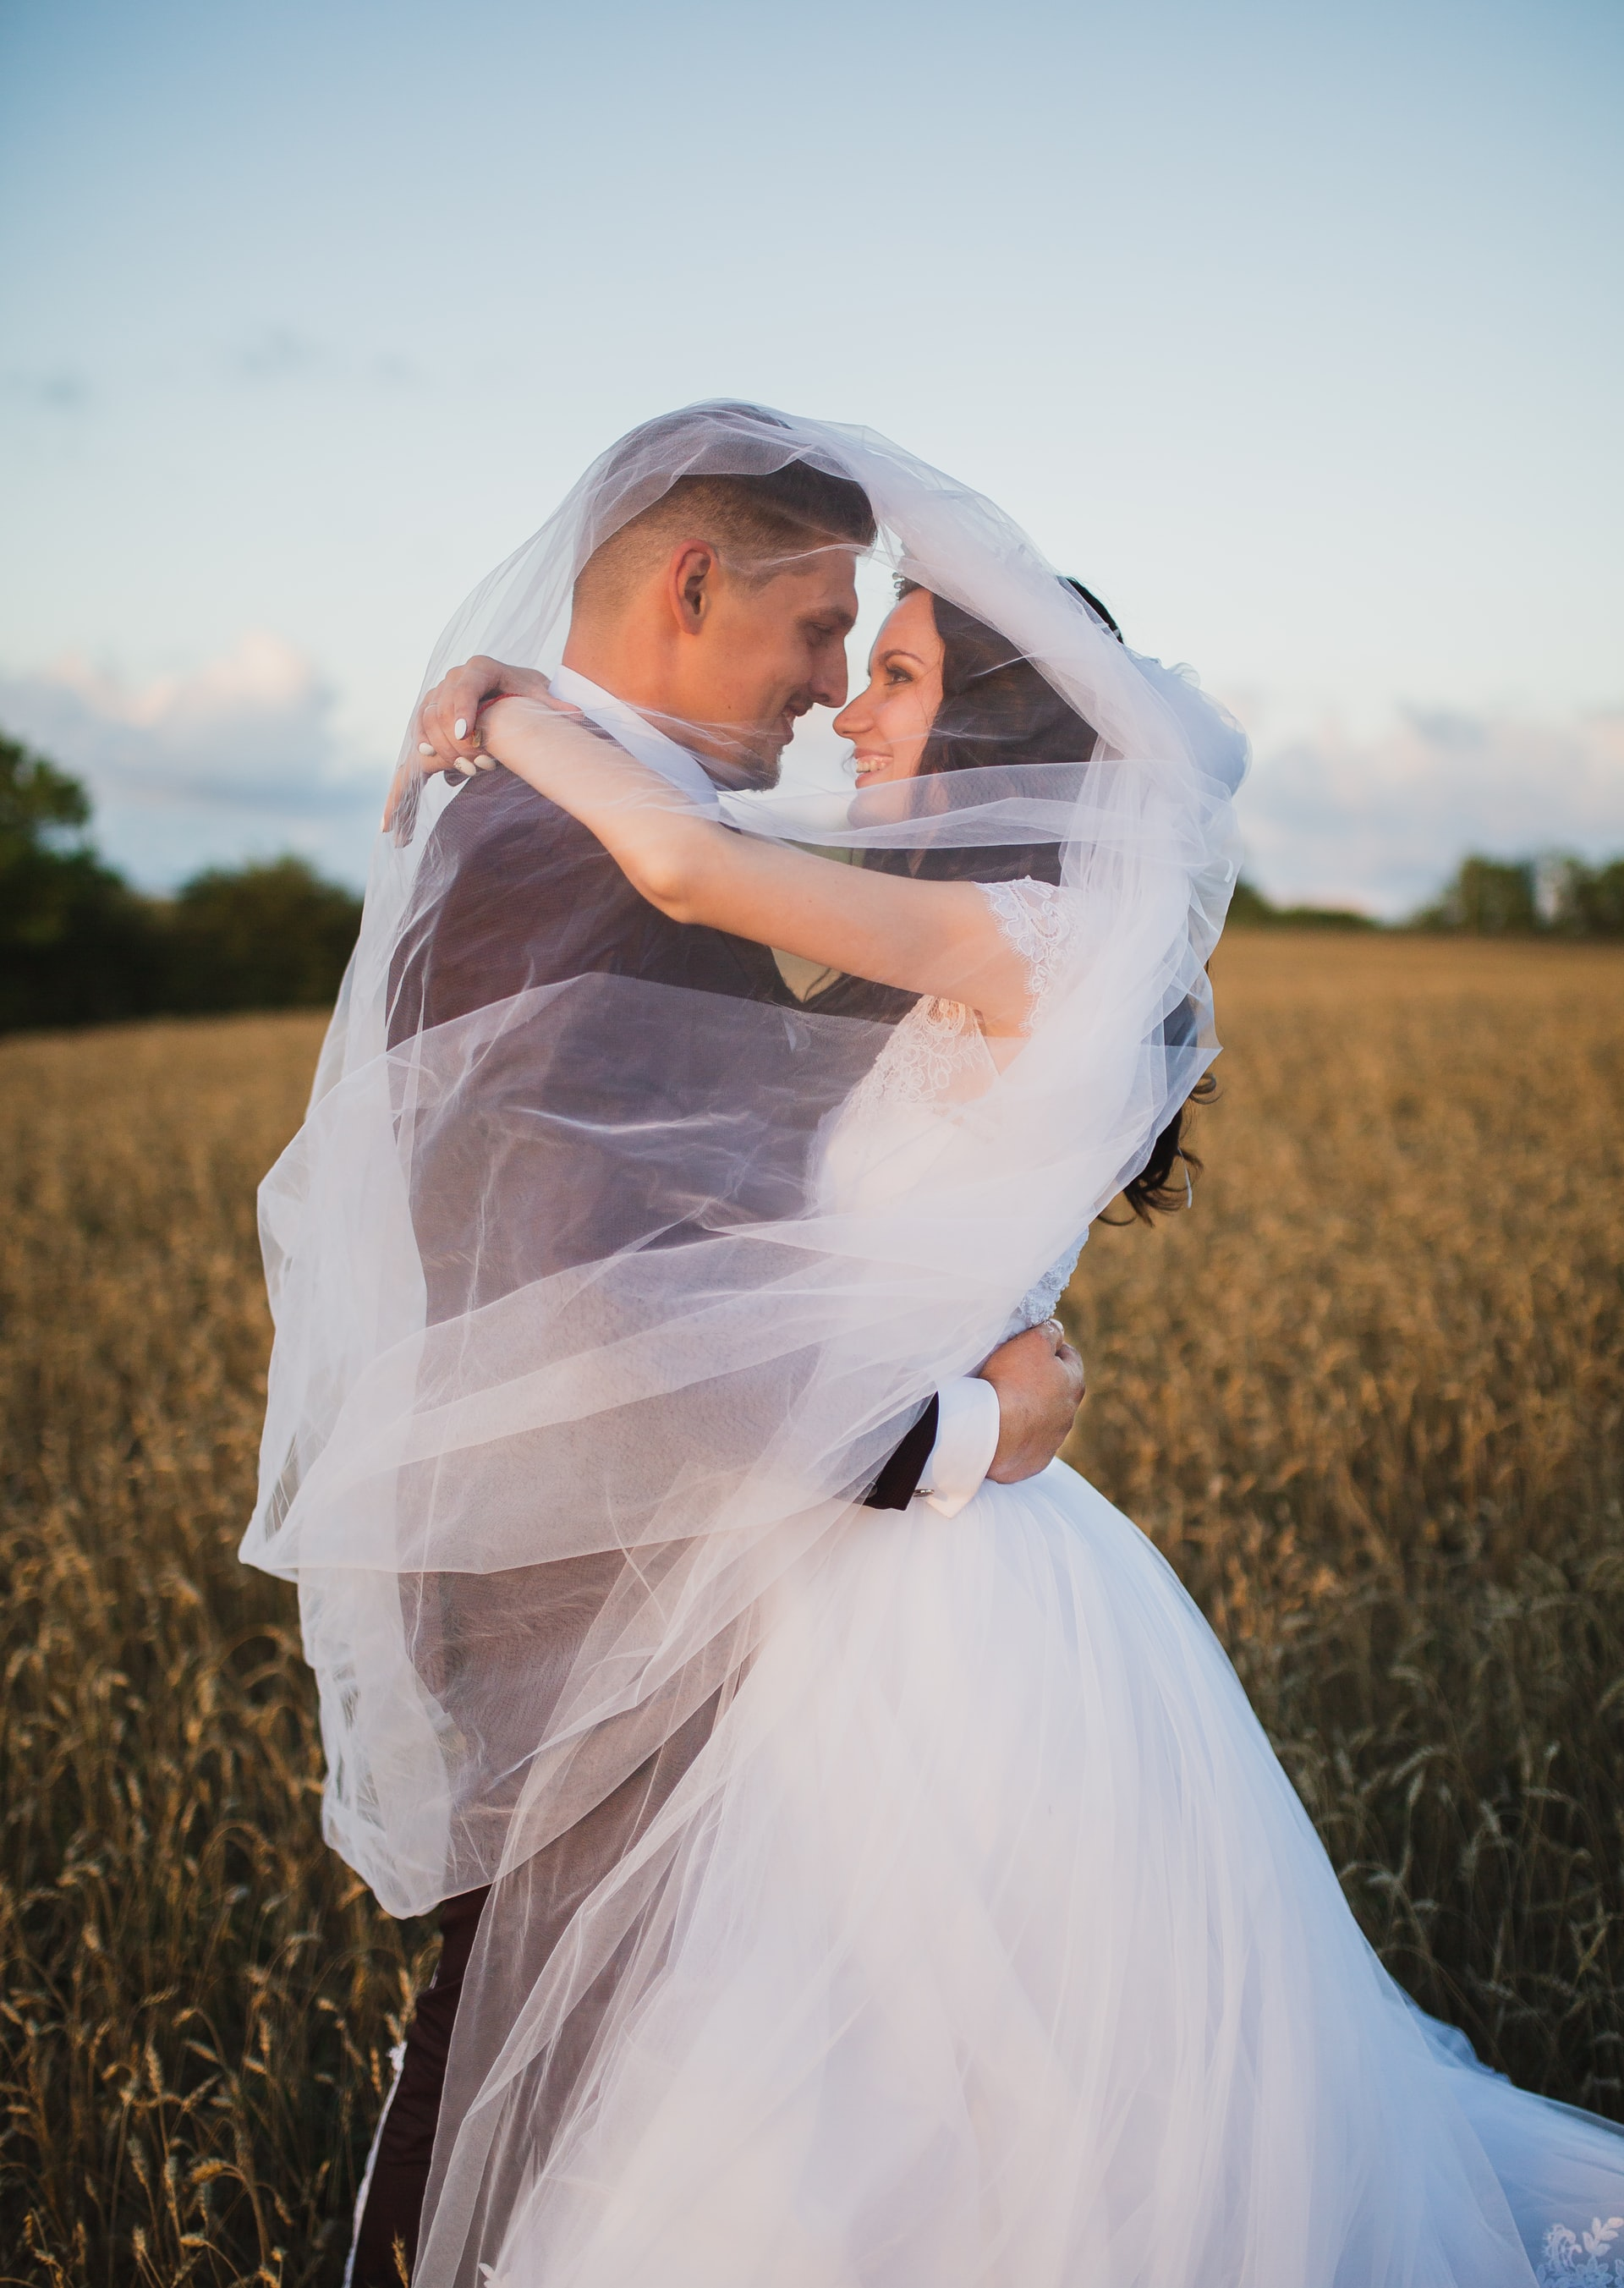 tips for creating a wedding album 1 image